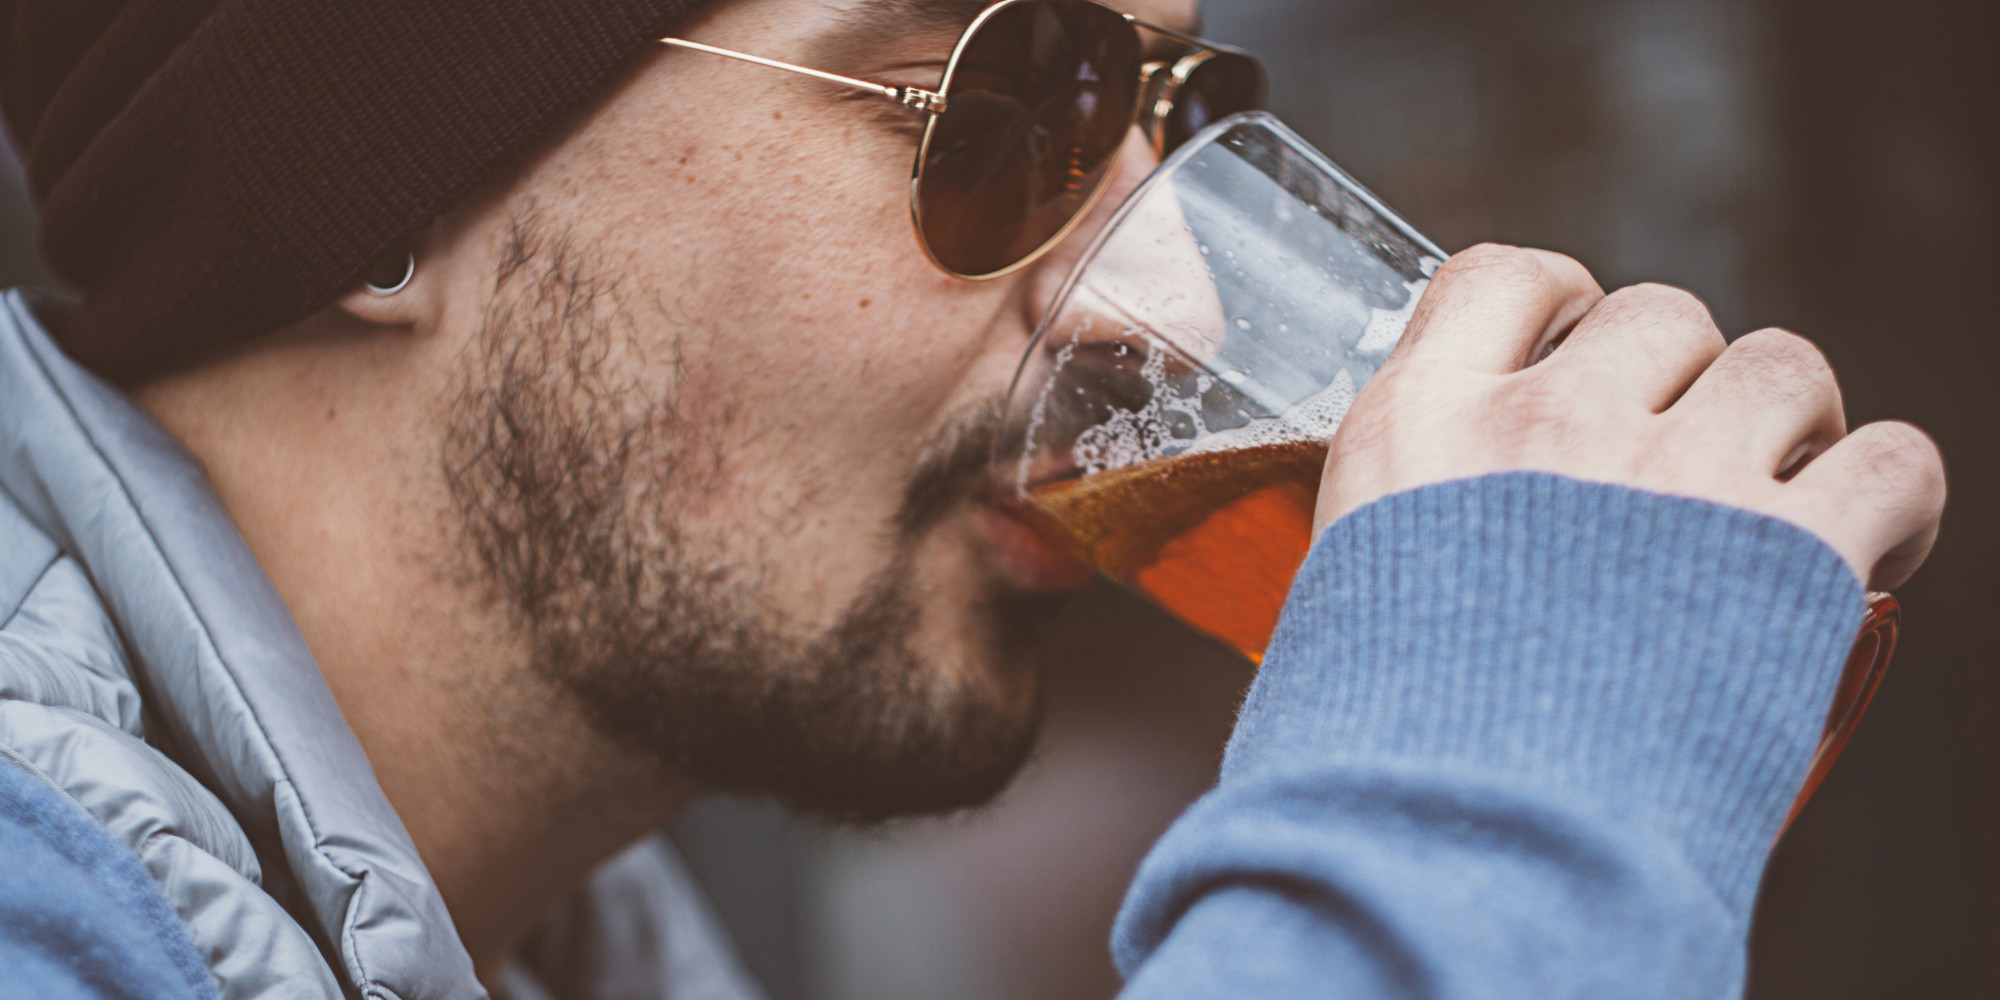 Sip with caution! Every Extra Pint of Beer Takes 15 Minutes Off Your Life photo